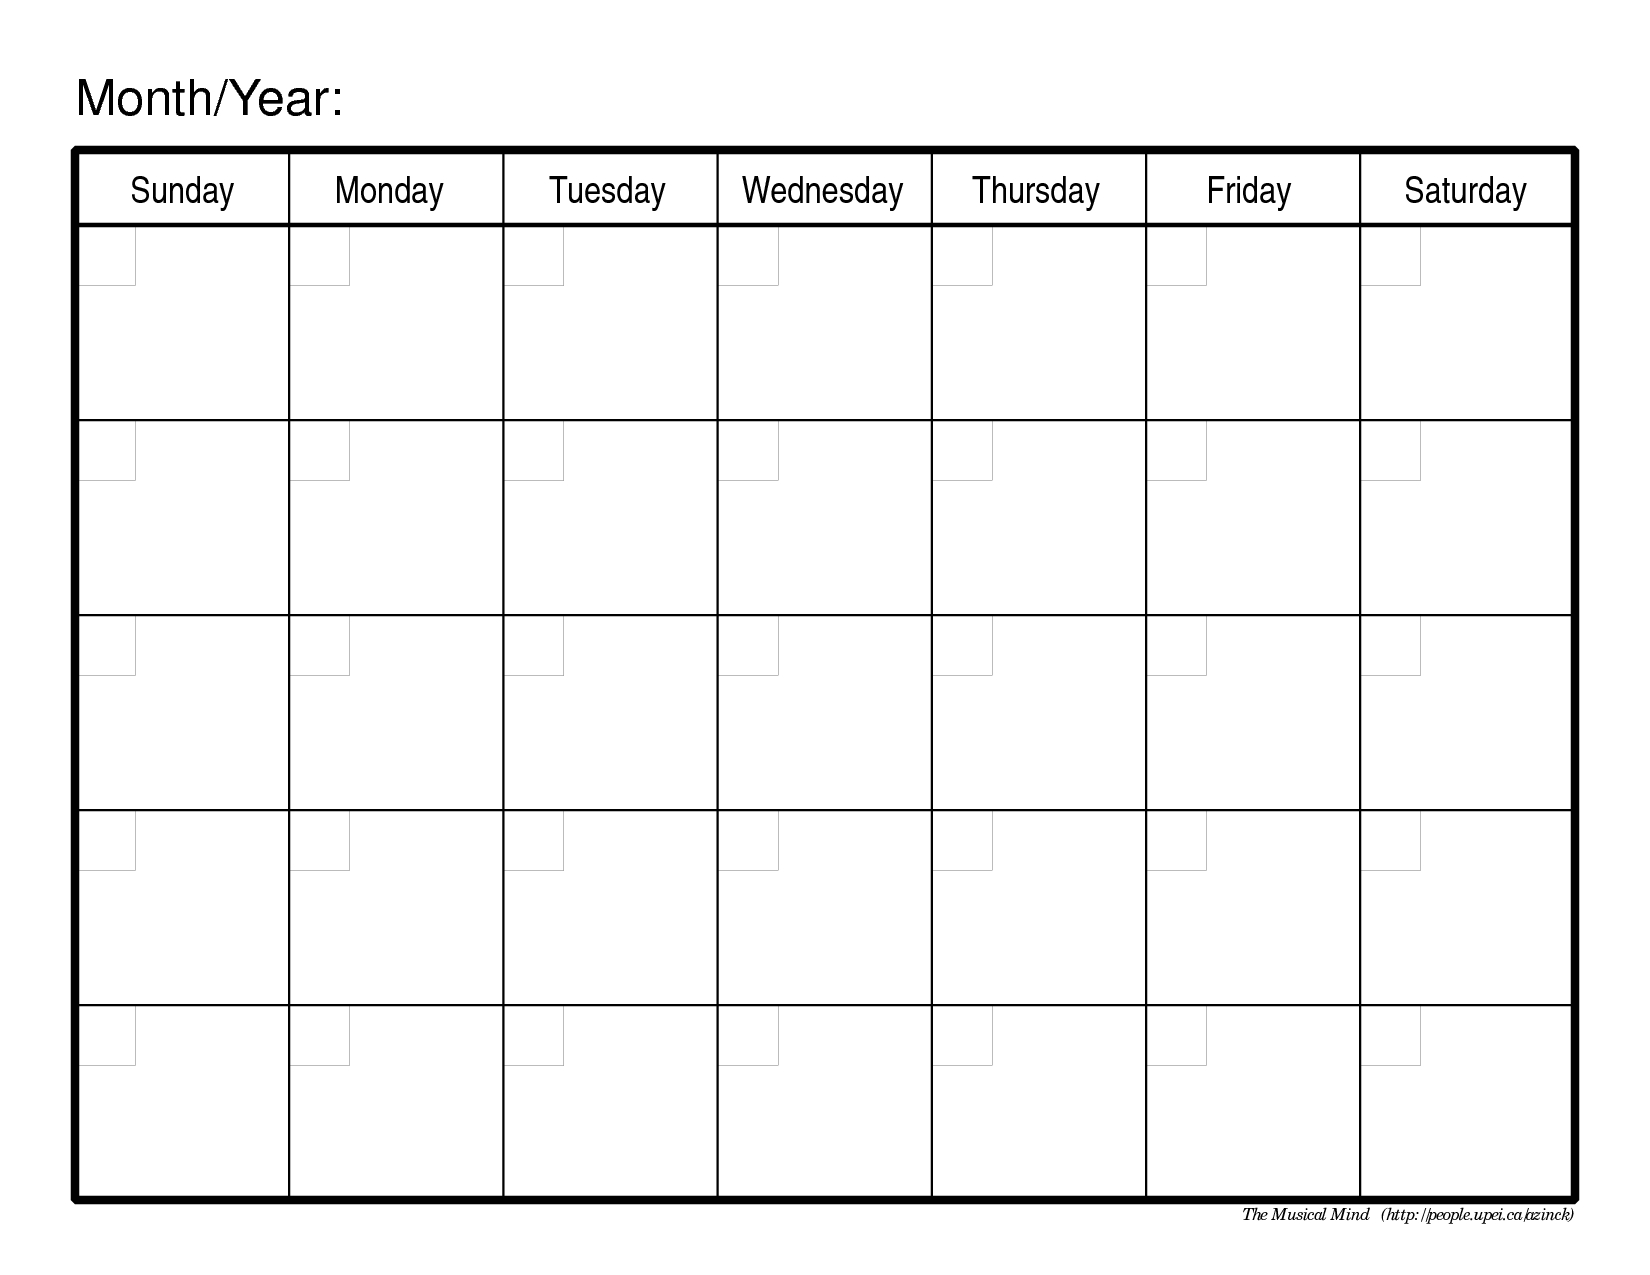 Monthly Calendar To Print Out Yearly Calendar Printable3abry